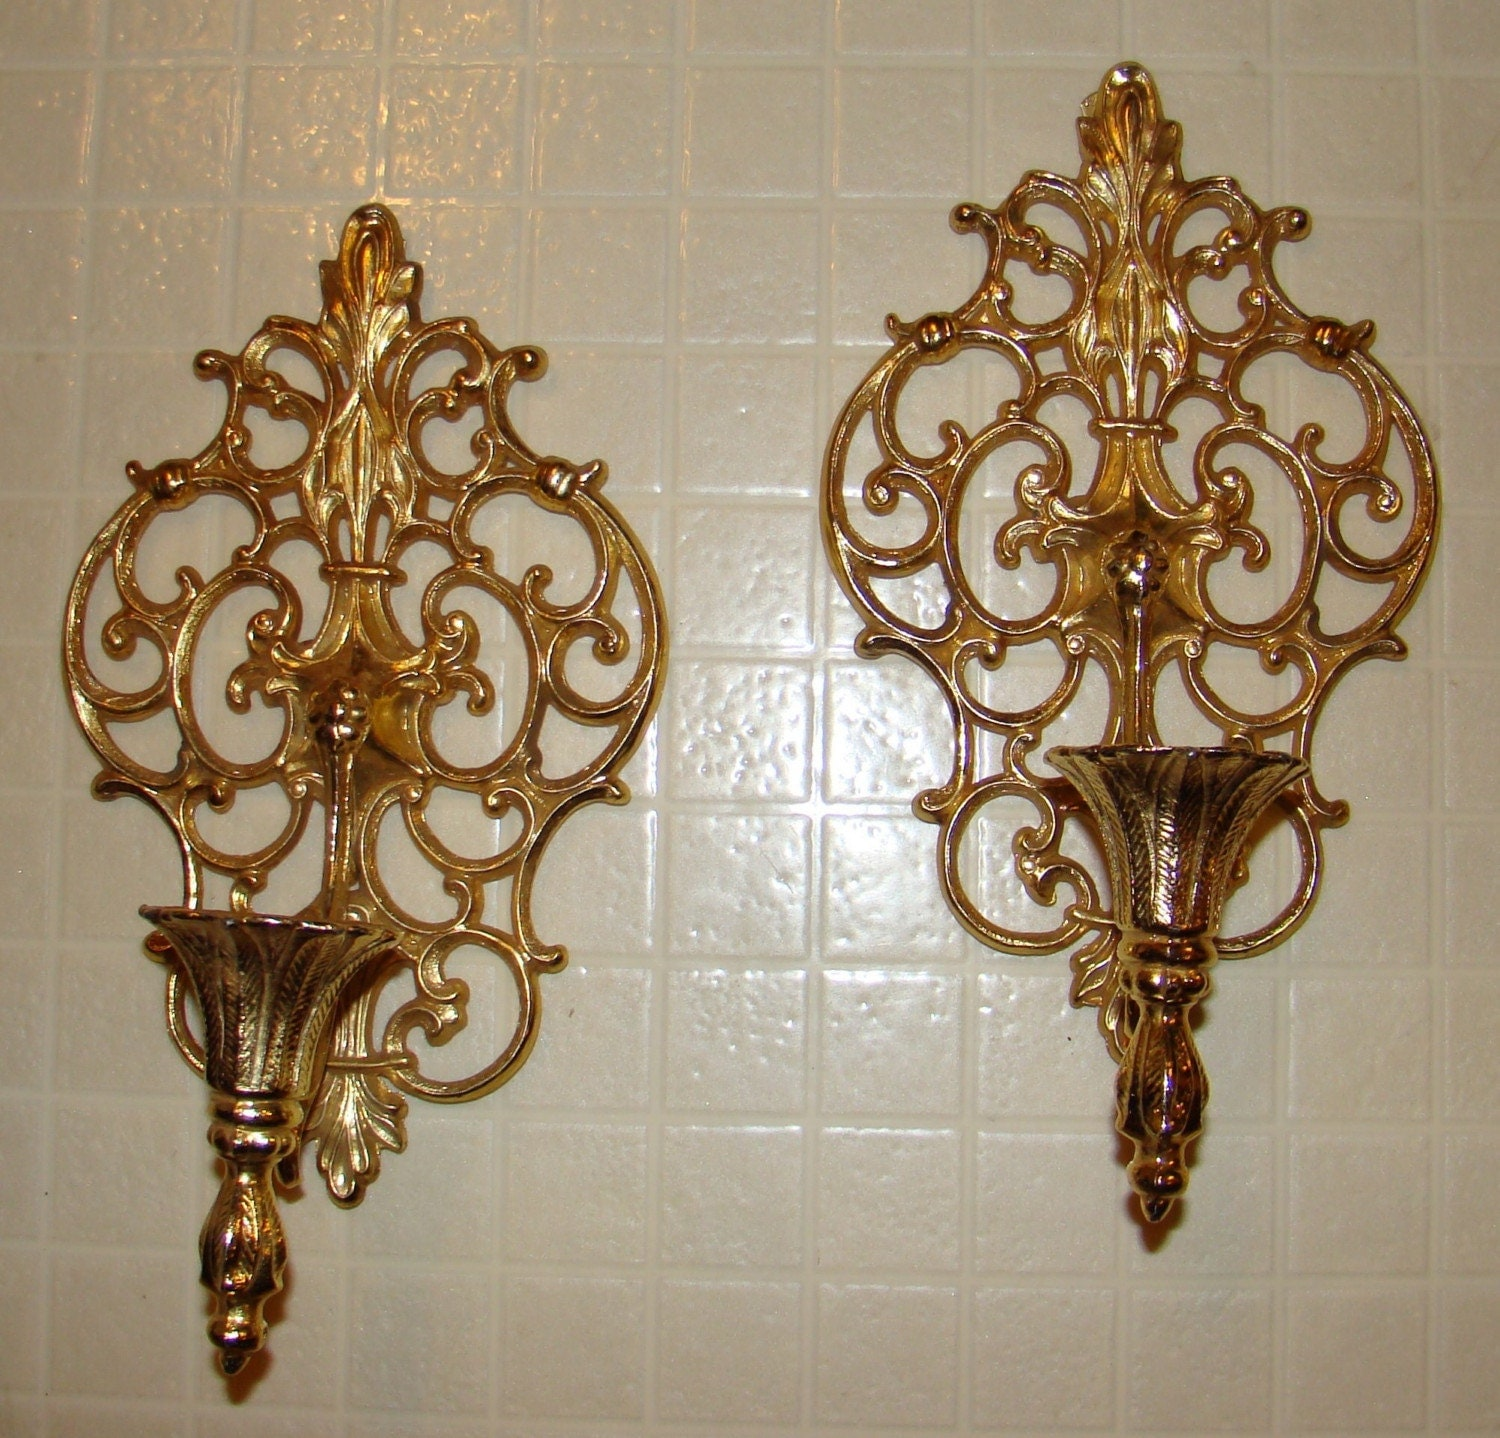 Candle Wall Sconces Vintage : Vintage Pair Ornate Gold Tone Metal Wall Sconces/Candle